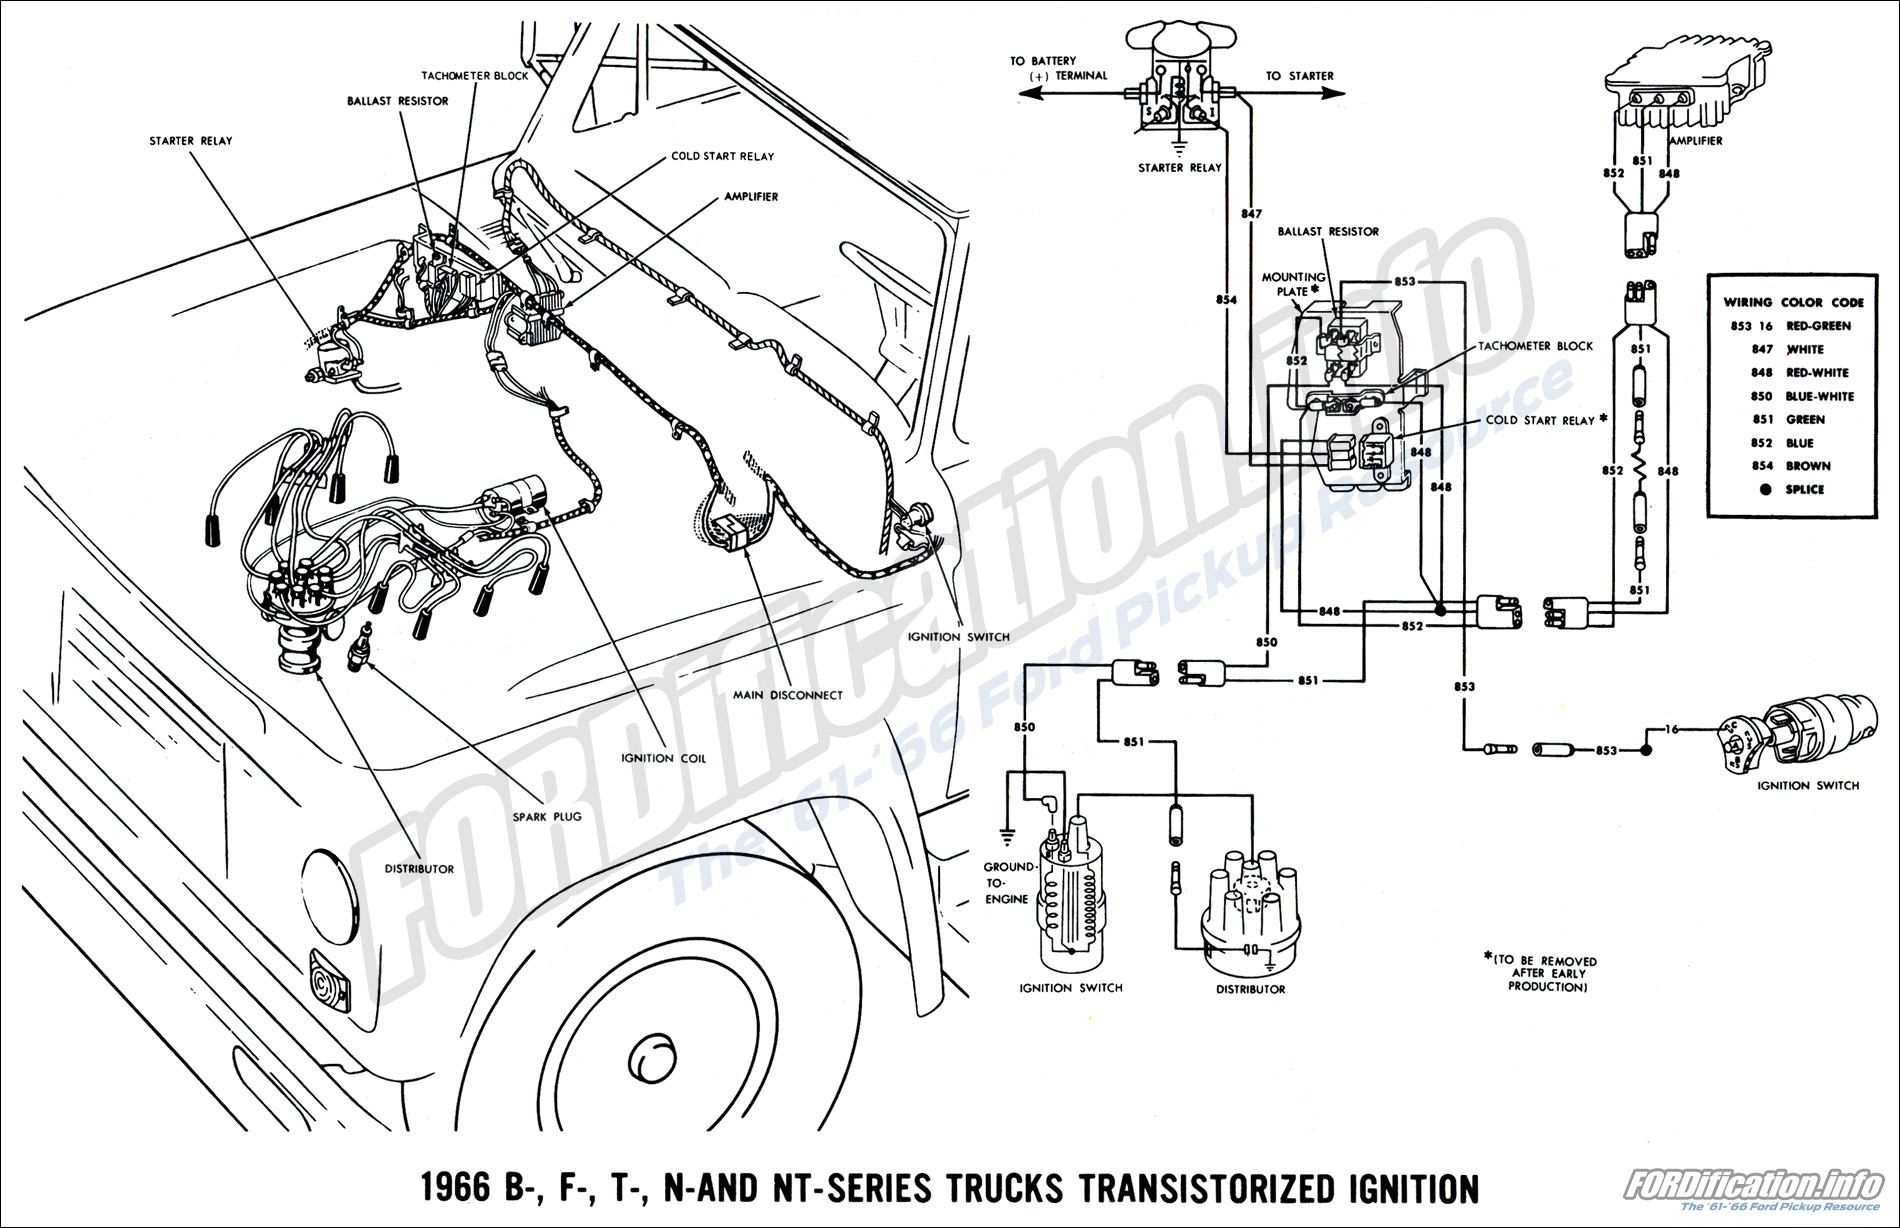 1966 ford truck wiring diagrams fordification info the '61 '66 bulb 1966 ford truck wiring diagram 1966 b , f , t , n and nt series transistorized ignition